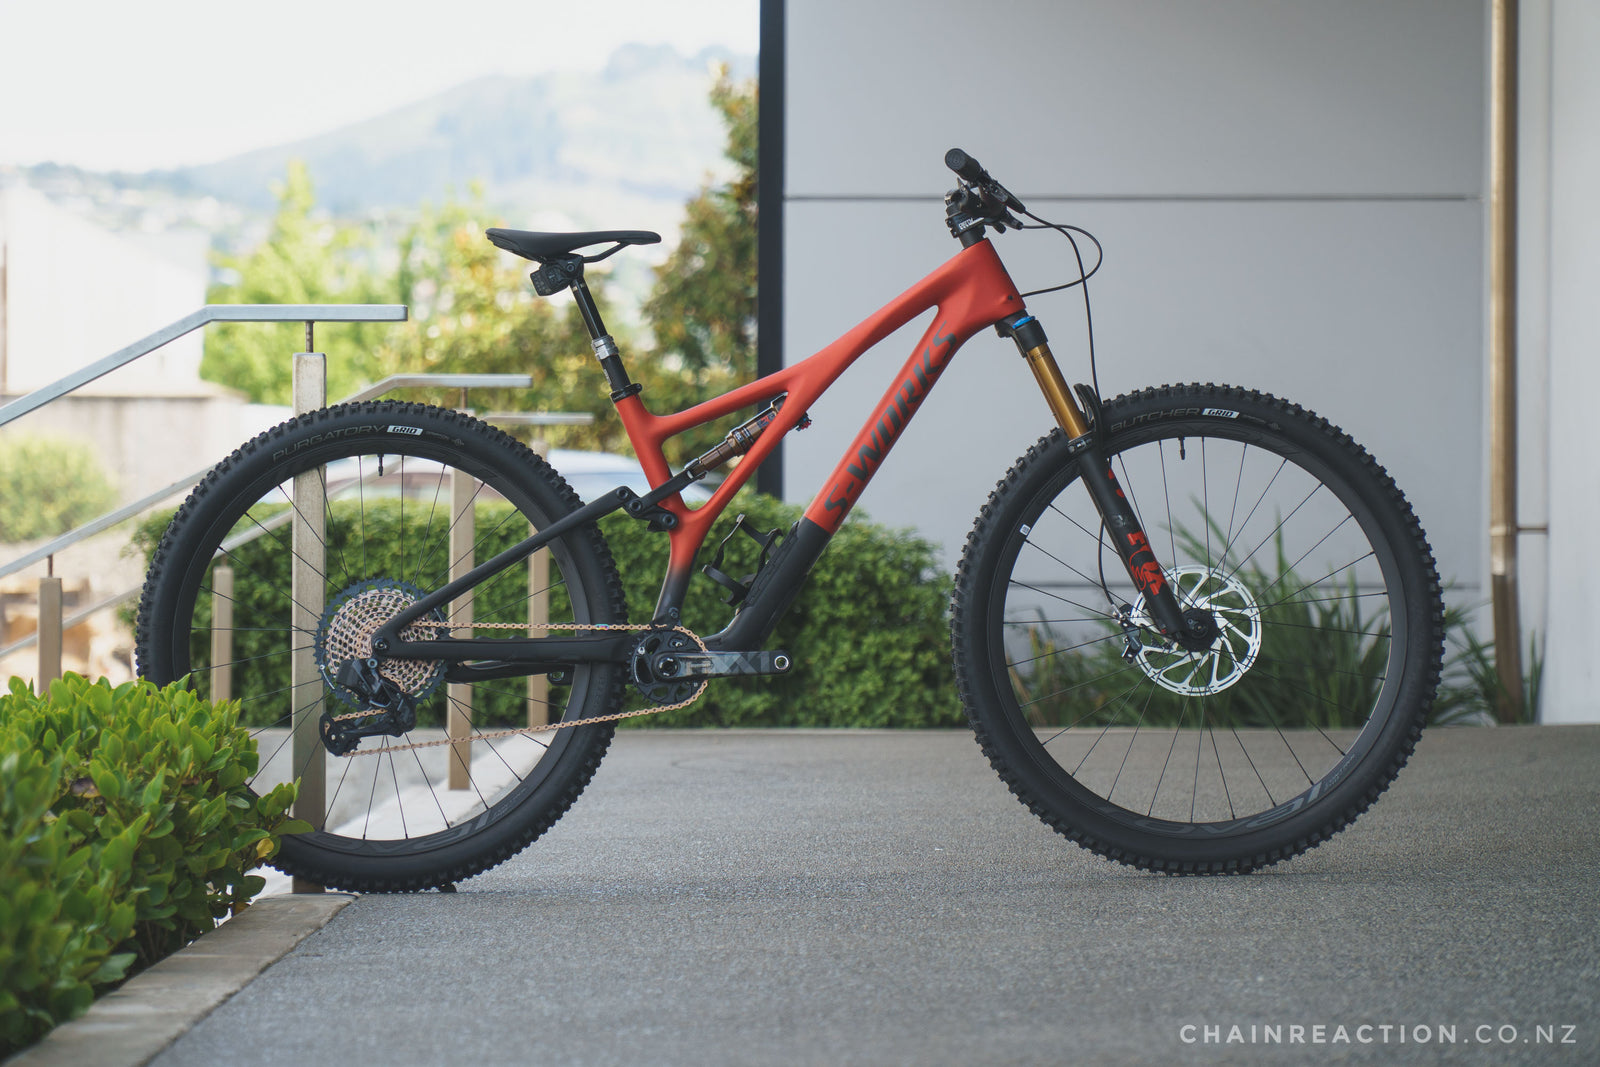 All-New S-Works Stumpjumper